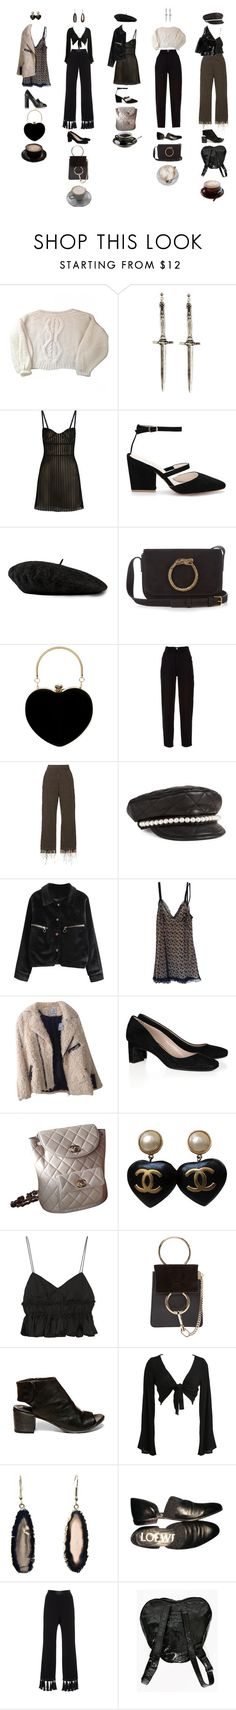 """""""Untitled #1154"""" by jayda-xx ❤ liked on Polyvore featuring Mes Demoiselles..., Pamela Love, Just Cavalli, Gucci, Yves Saint Laurent, Chanel, Isa Arfen, Moschino, UNIF and Miu Miu"""